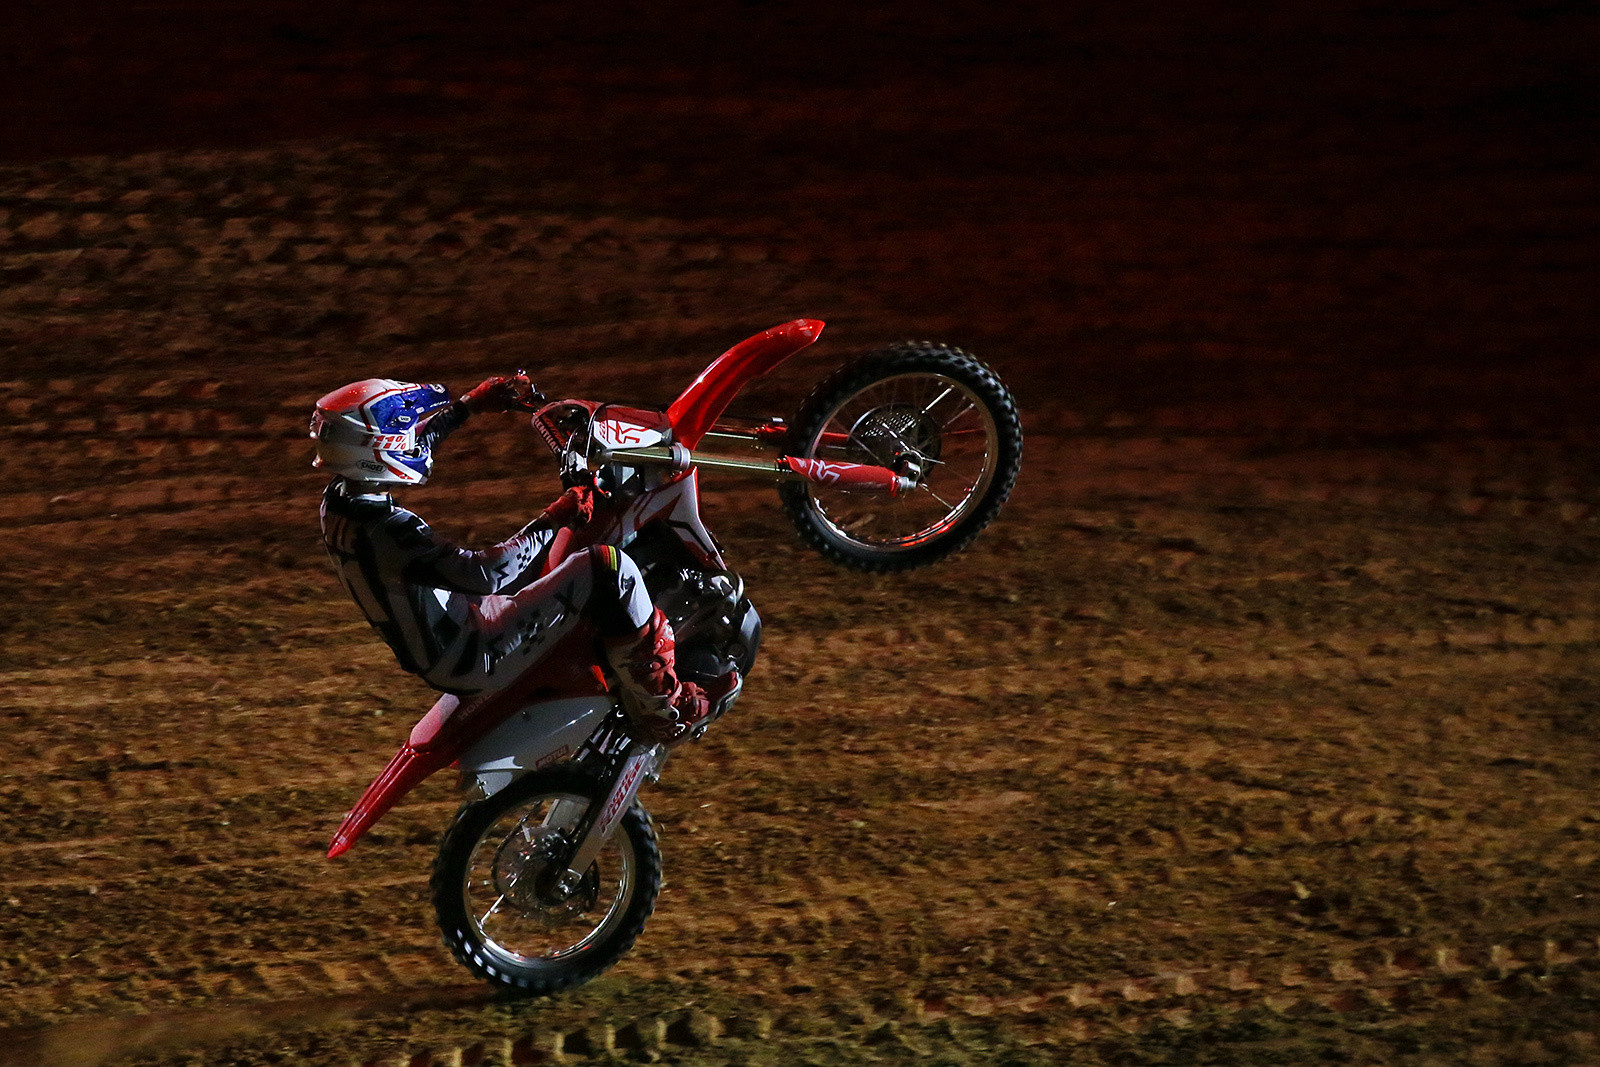 It was cool to see Jean-Michel Bayle still sporting his technical skills and wheelying down the start straight during opening ceremonies. He'd won the Paris Supercross (in the old Bercy Stadium) in '90 and '91, and was also Supercross champ in the U.S. in '91. This was the 35th Paris Supercross, and they've held something like 106 nights of racing. That sounds like it could be the most of any city in the world.